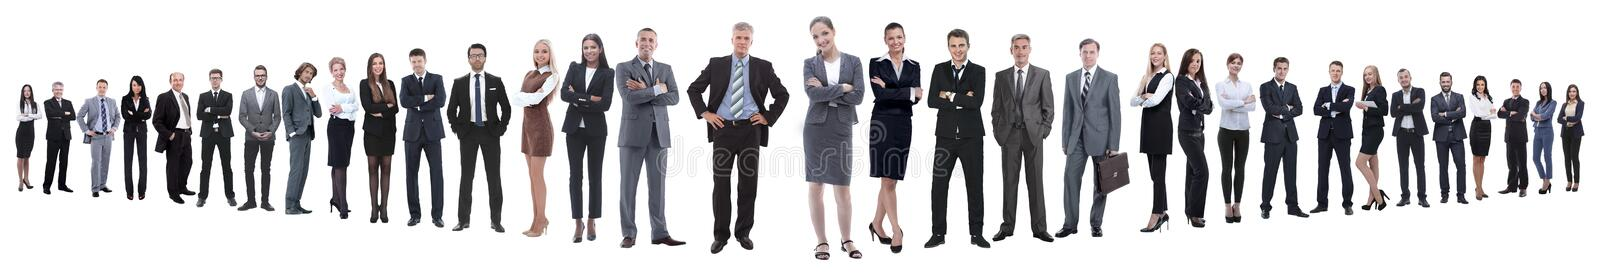 Panoramic photo of a group of confident business people. stock images